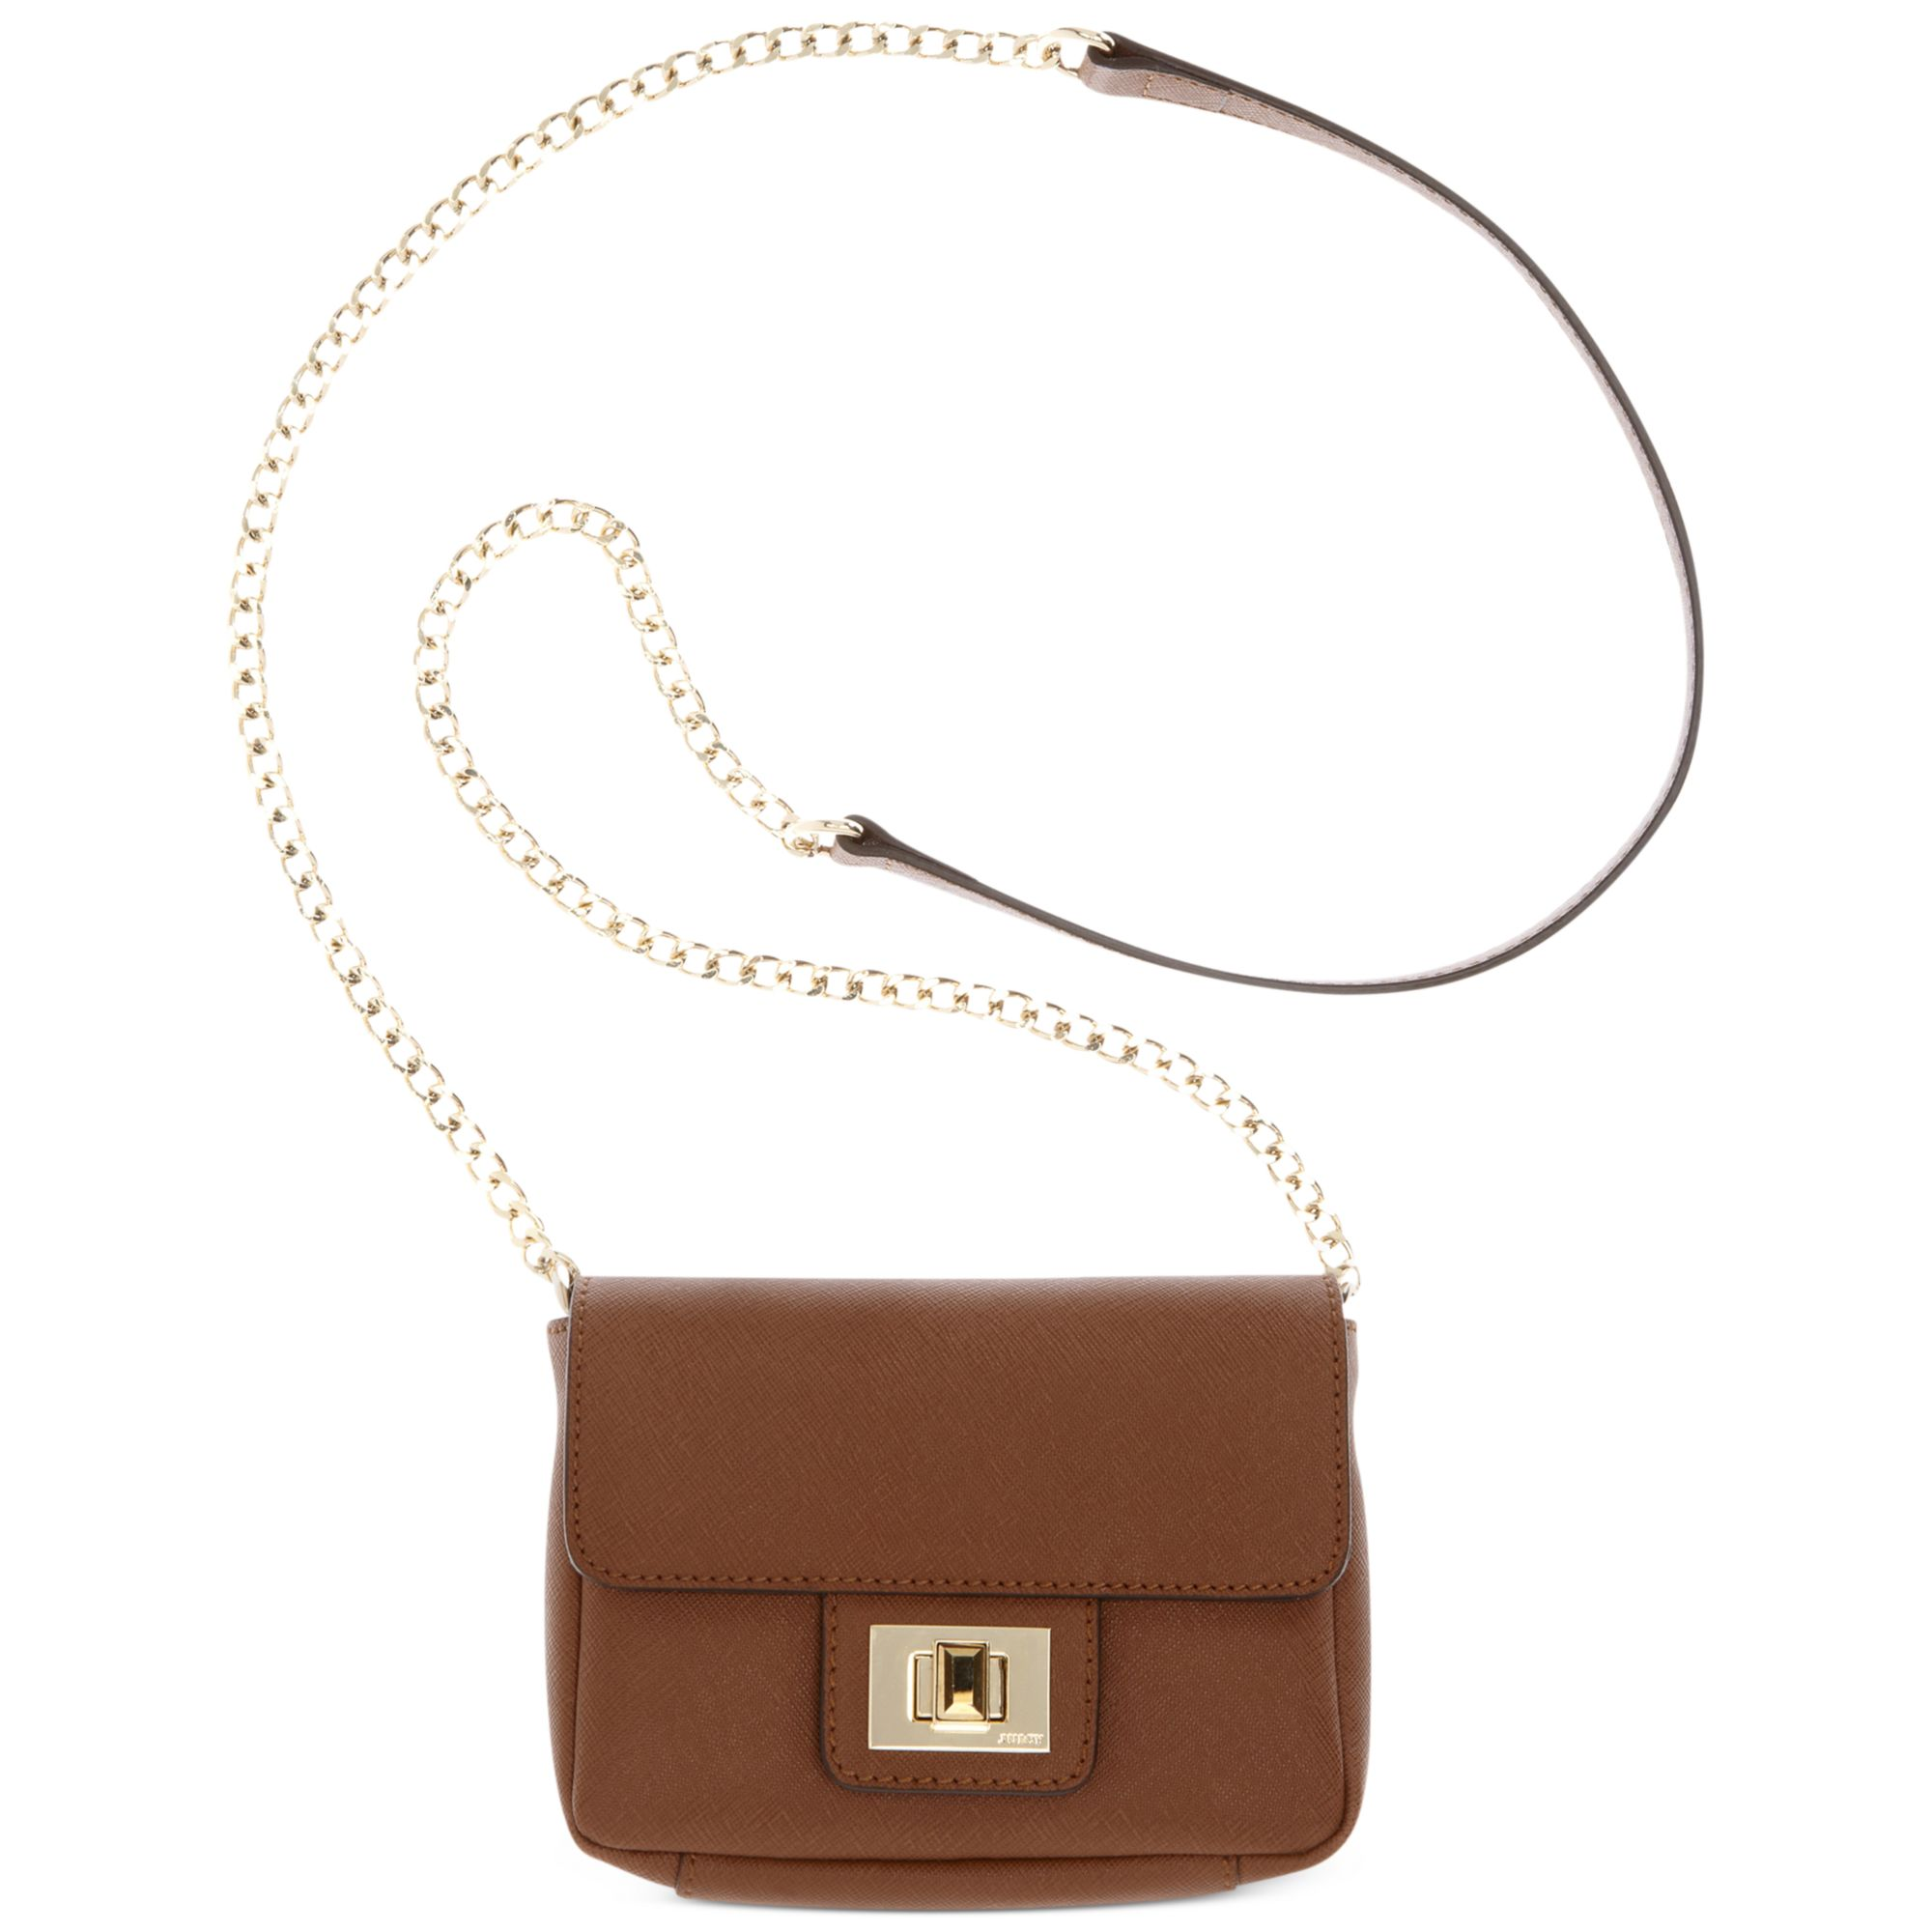 Lyst - Juicy Couture Sophia Mini Bag in Brown 0d449d7cde6a